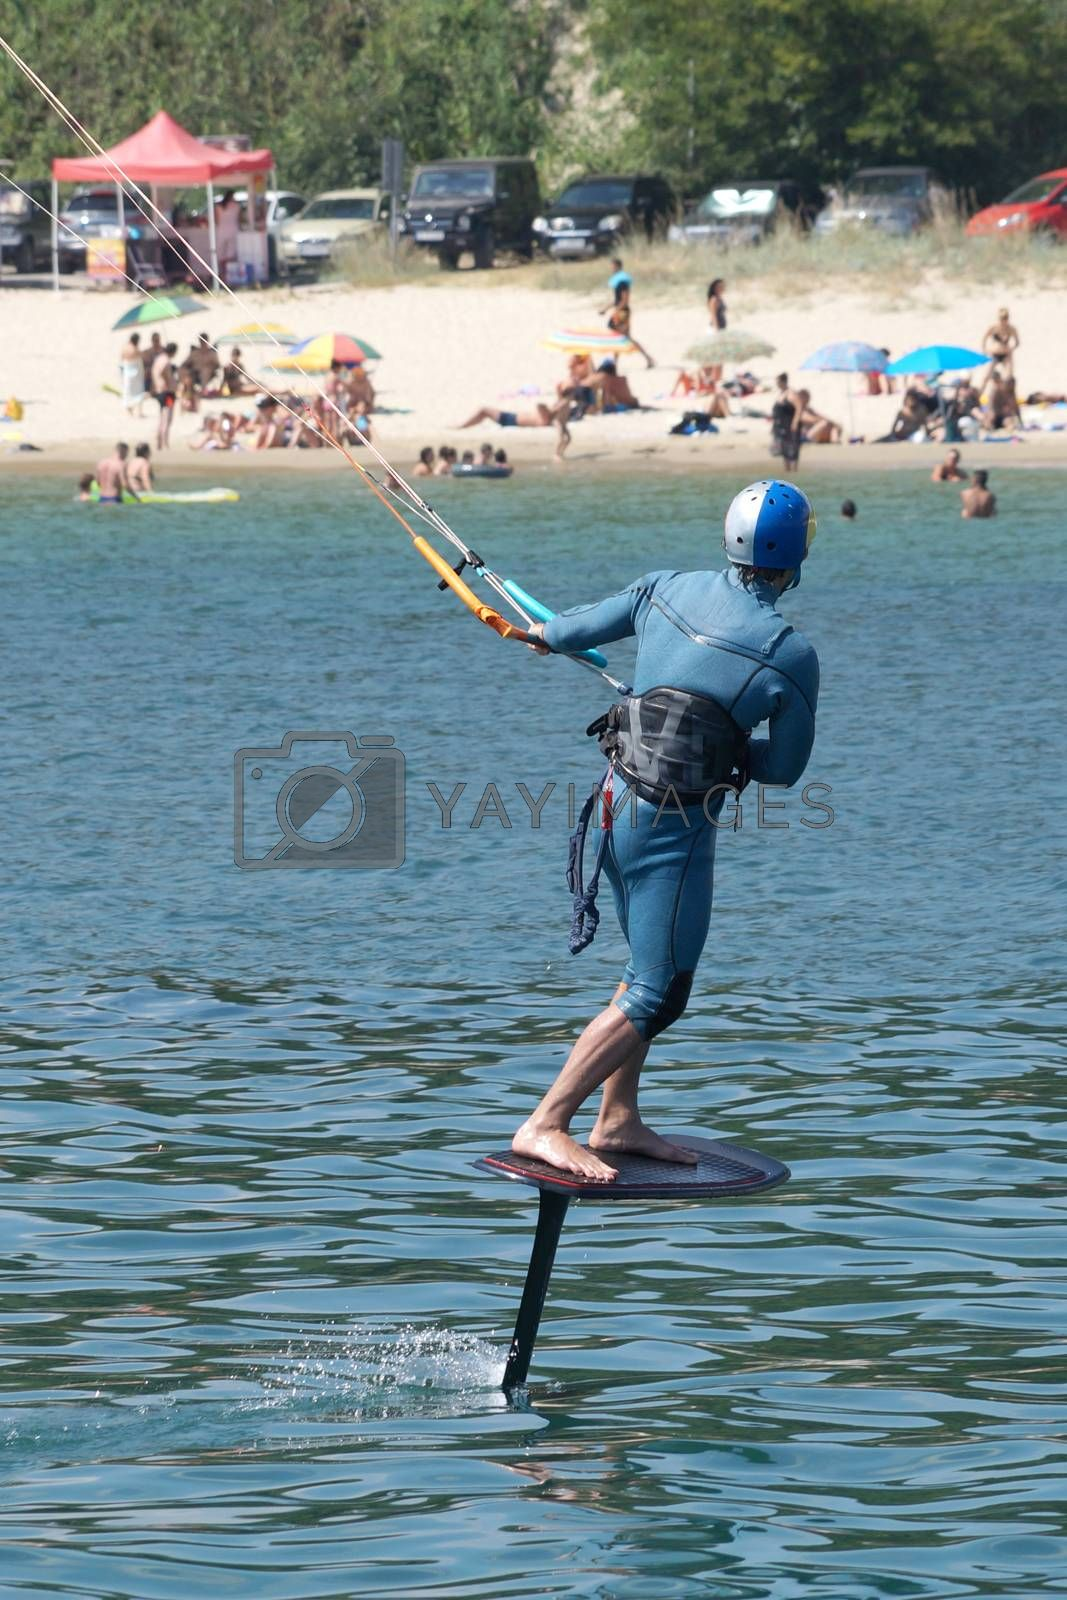 a man is kiting the sea against the background of the beach.